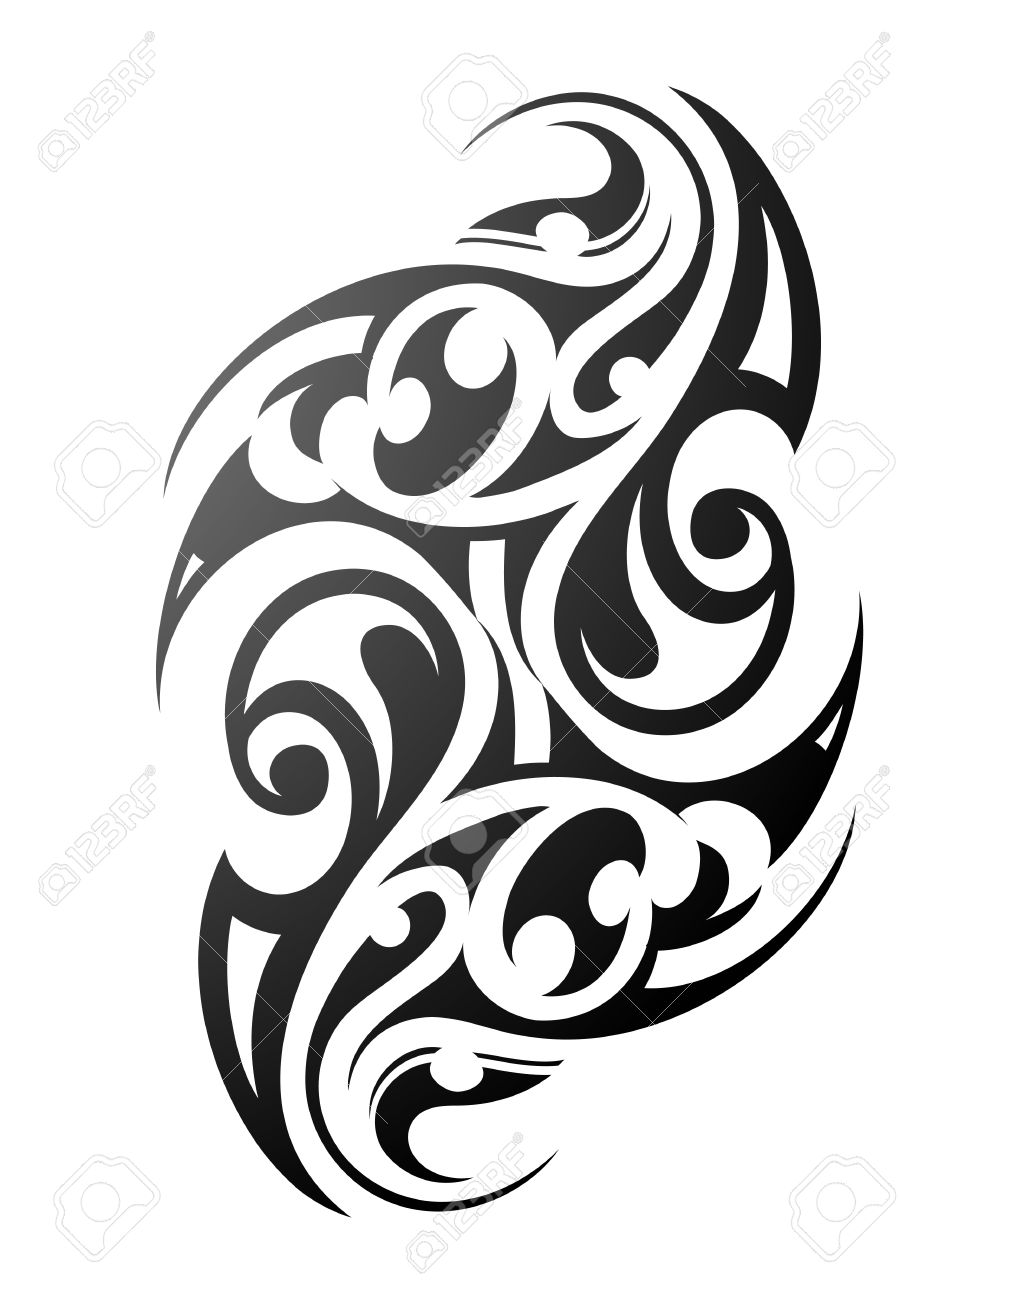 maori tattoo symbole bedeutung maori tattoo bedeutung motive stechen kosten 49 maori tattoo. Black Bedroom Furniture Sets. Home Design Ideas